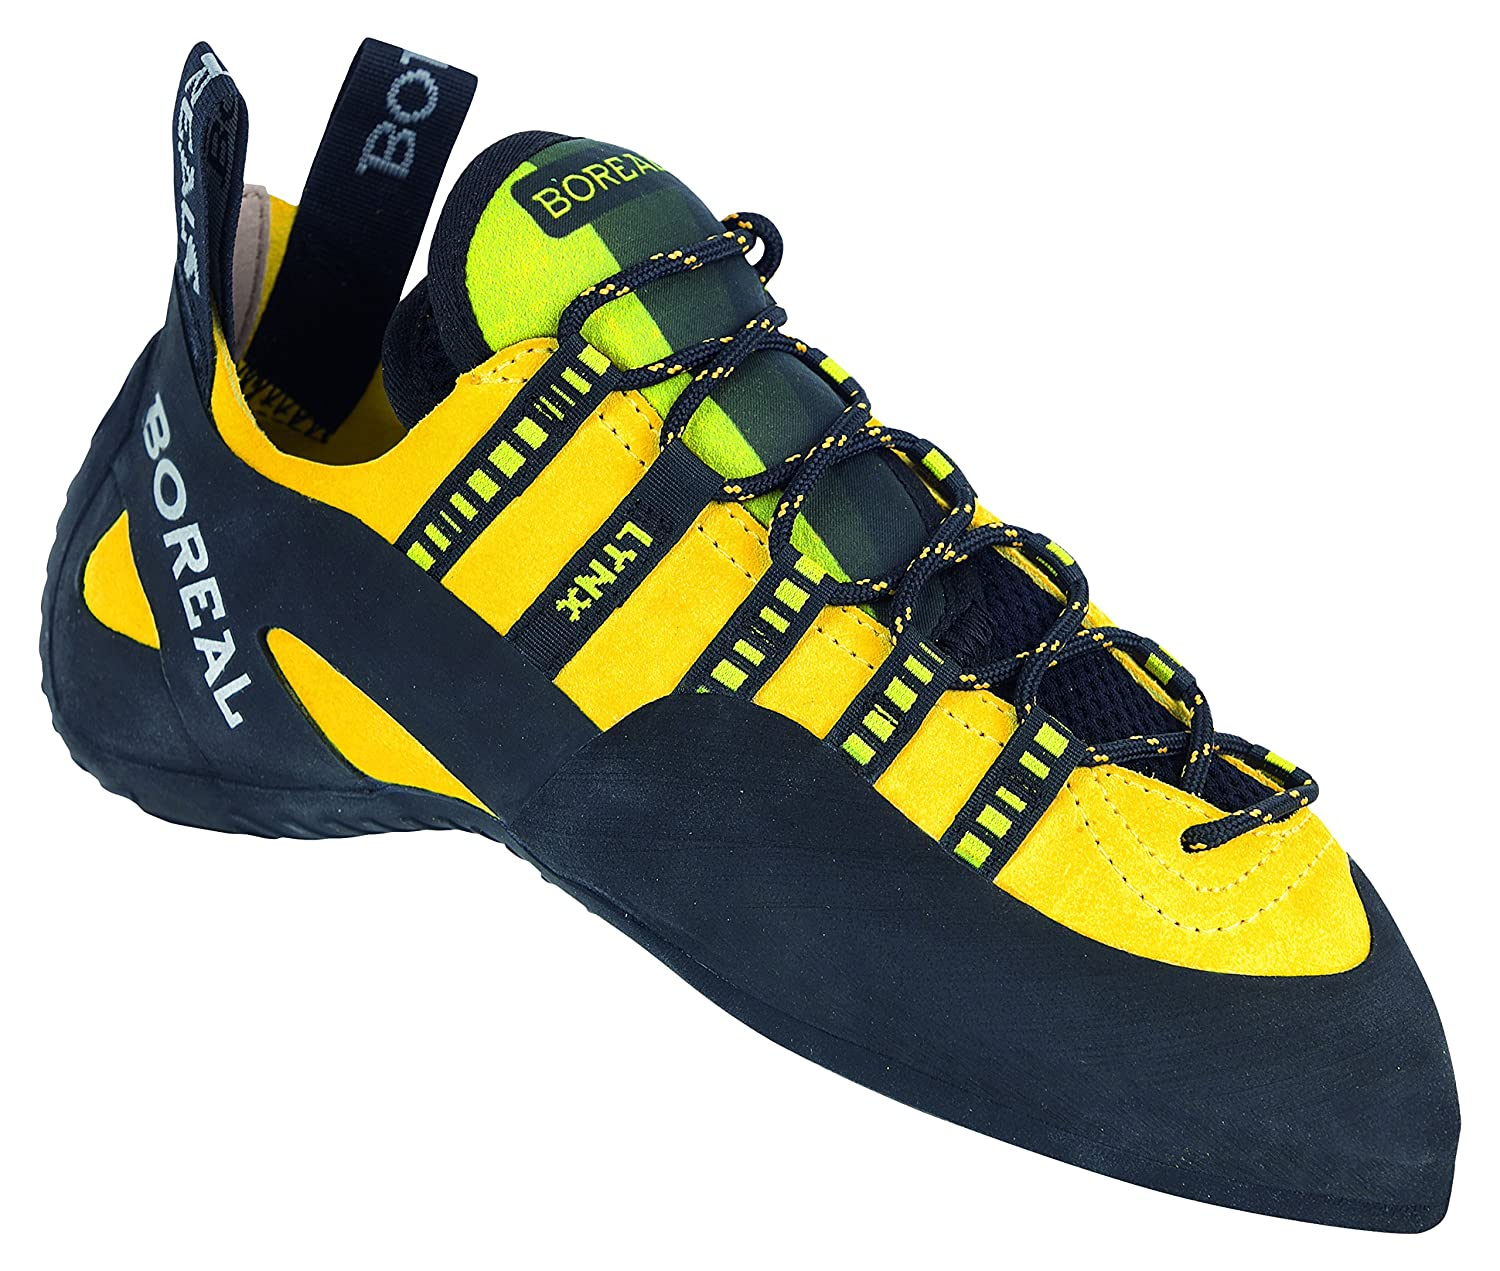 Boreal Lynx Climbing Shoes - Men's 11511-75